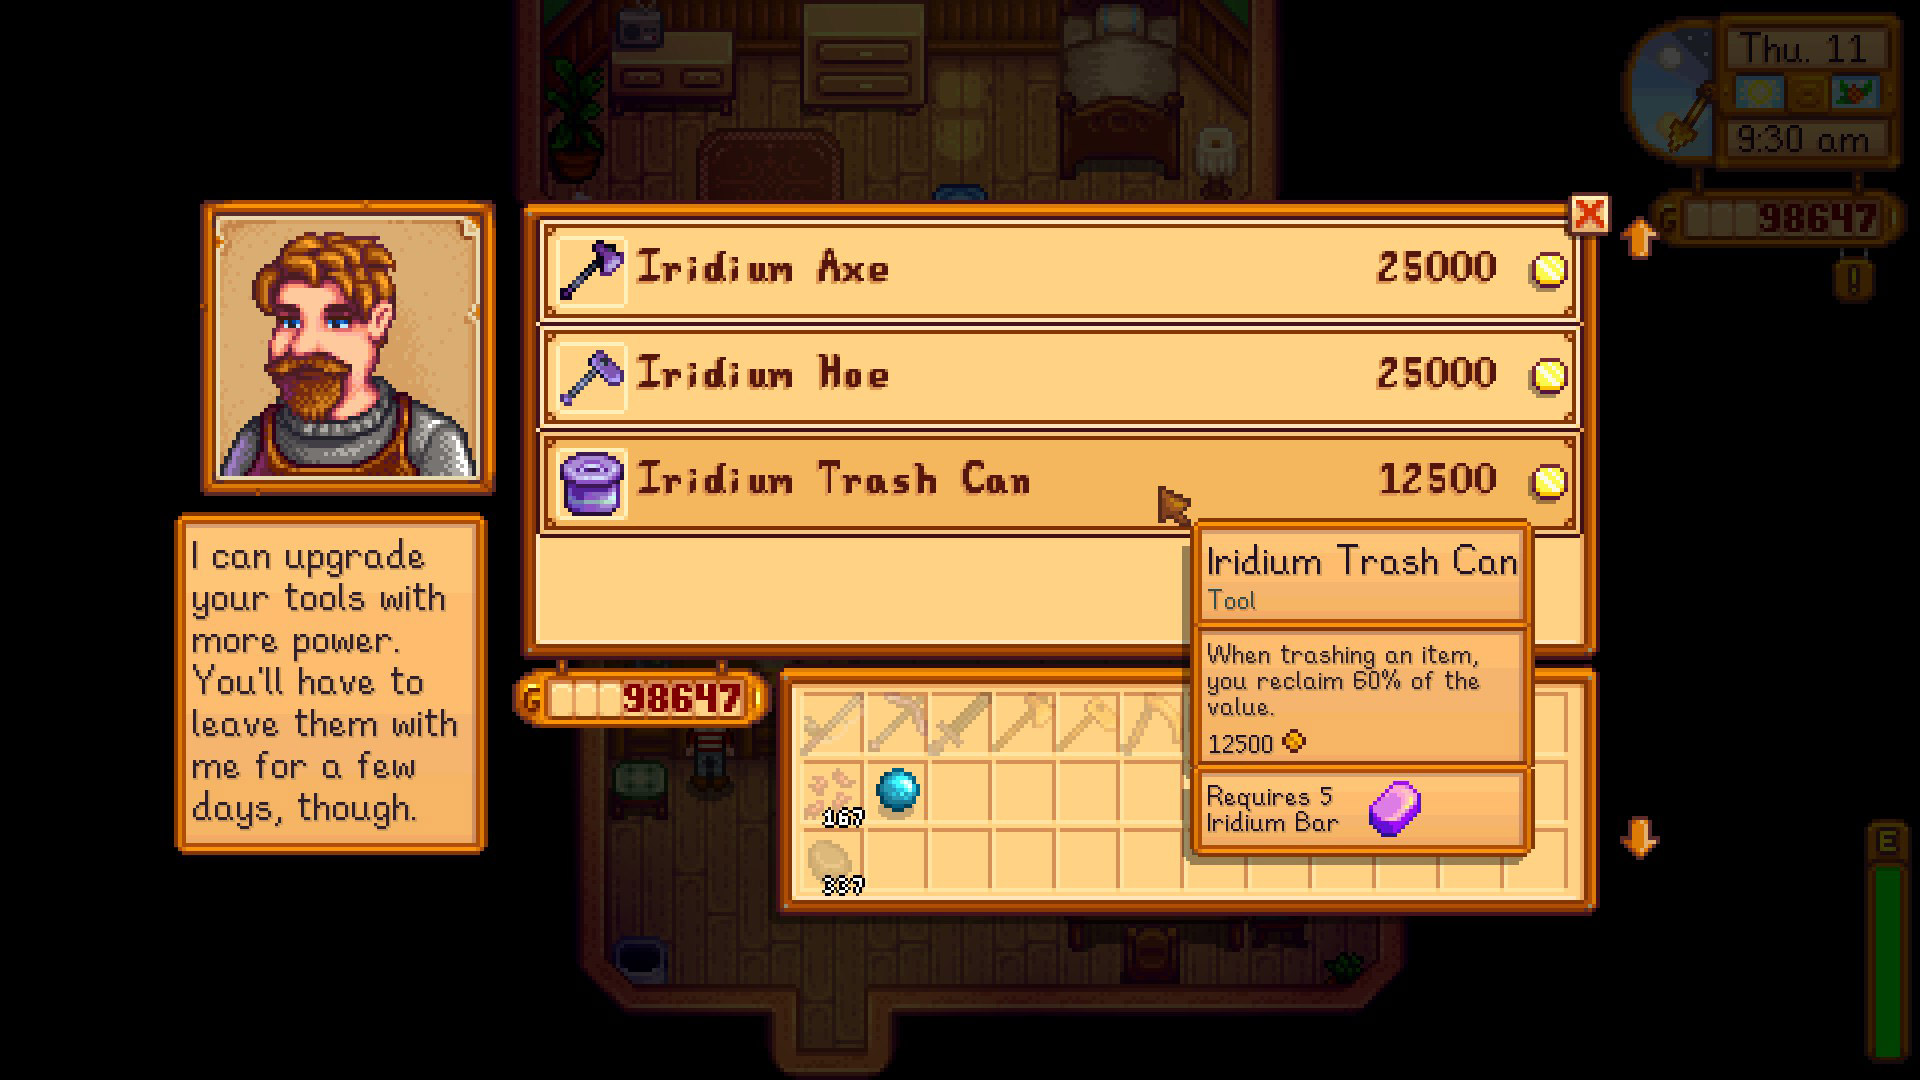 Don't forget to upgrade your trash can in Stardew Valley